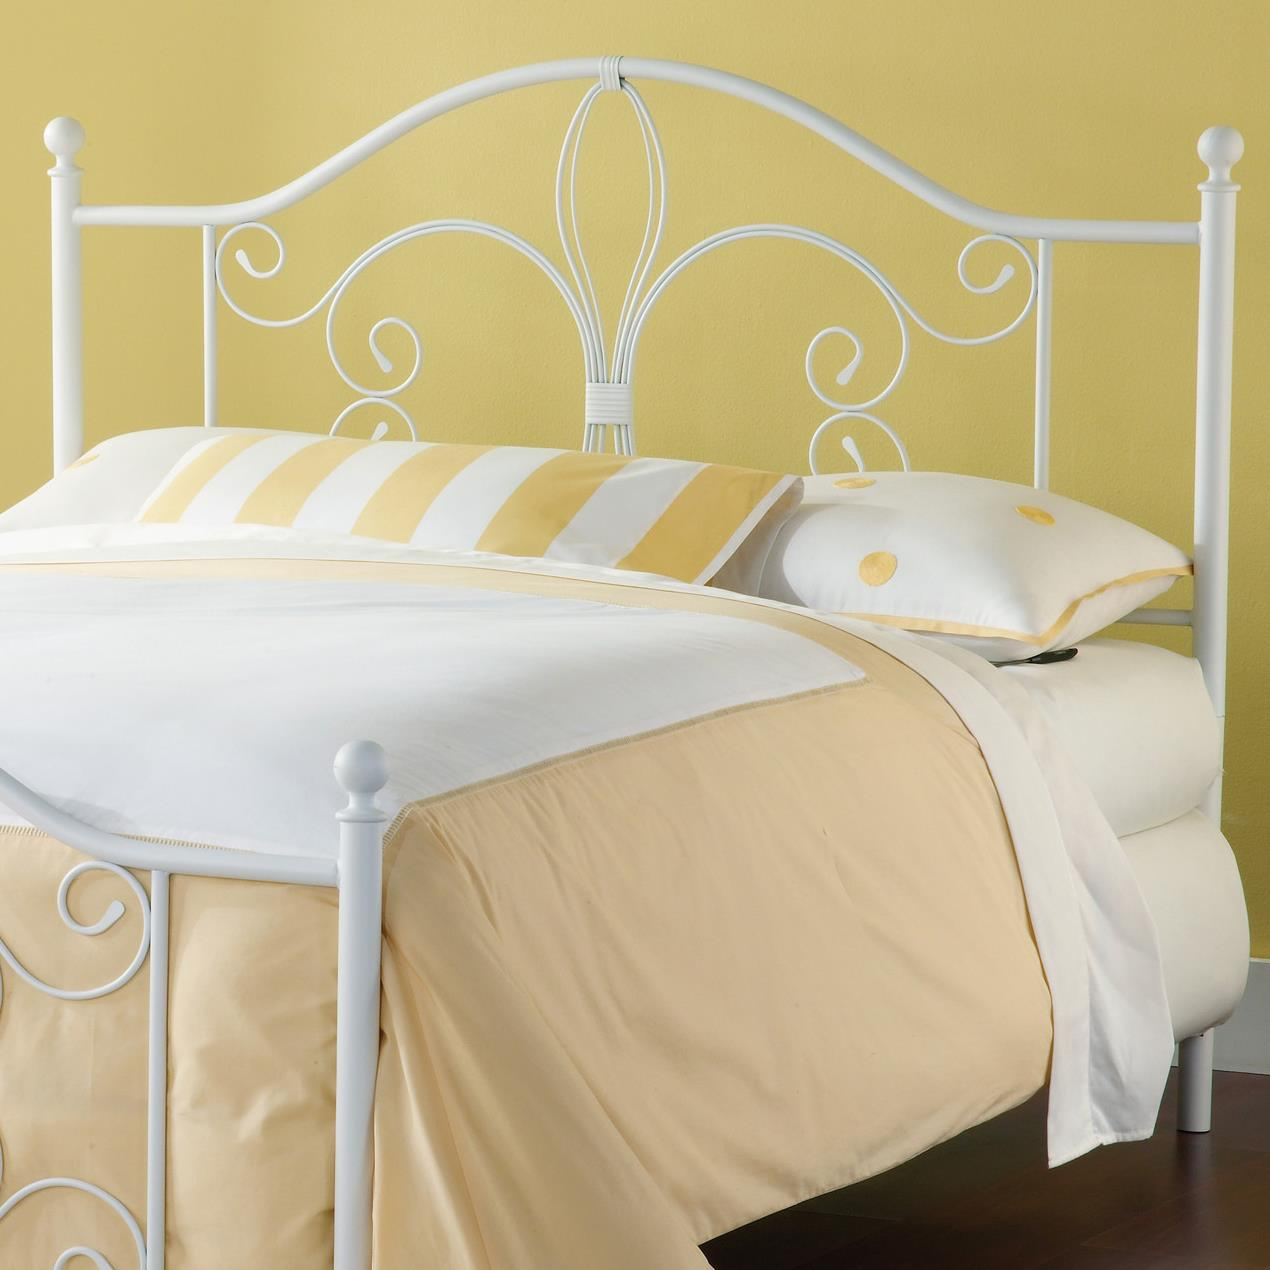 Hillsdale Metal Beds Ruby King Headboard with Rails - Item Number: 1687HKR